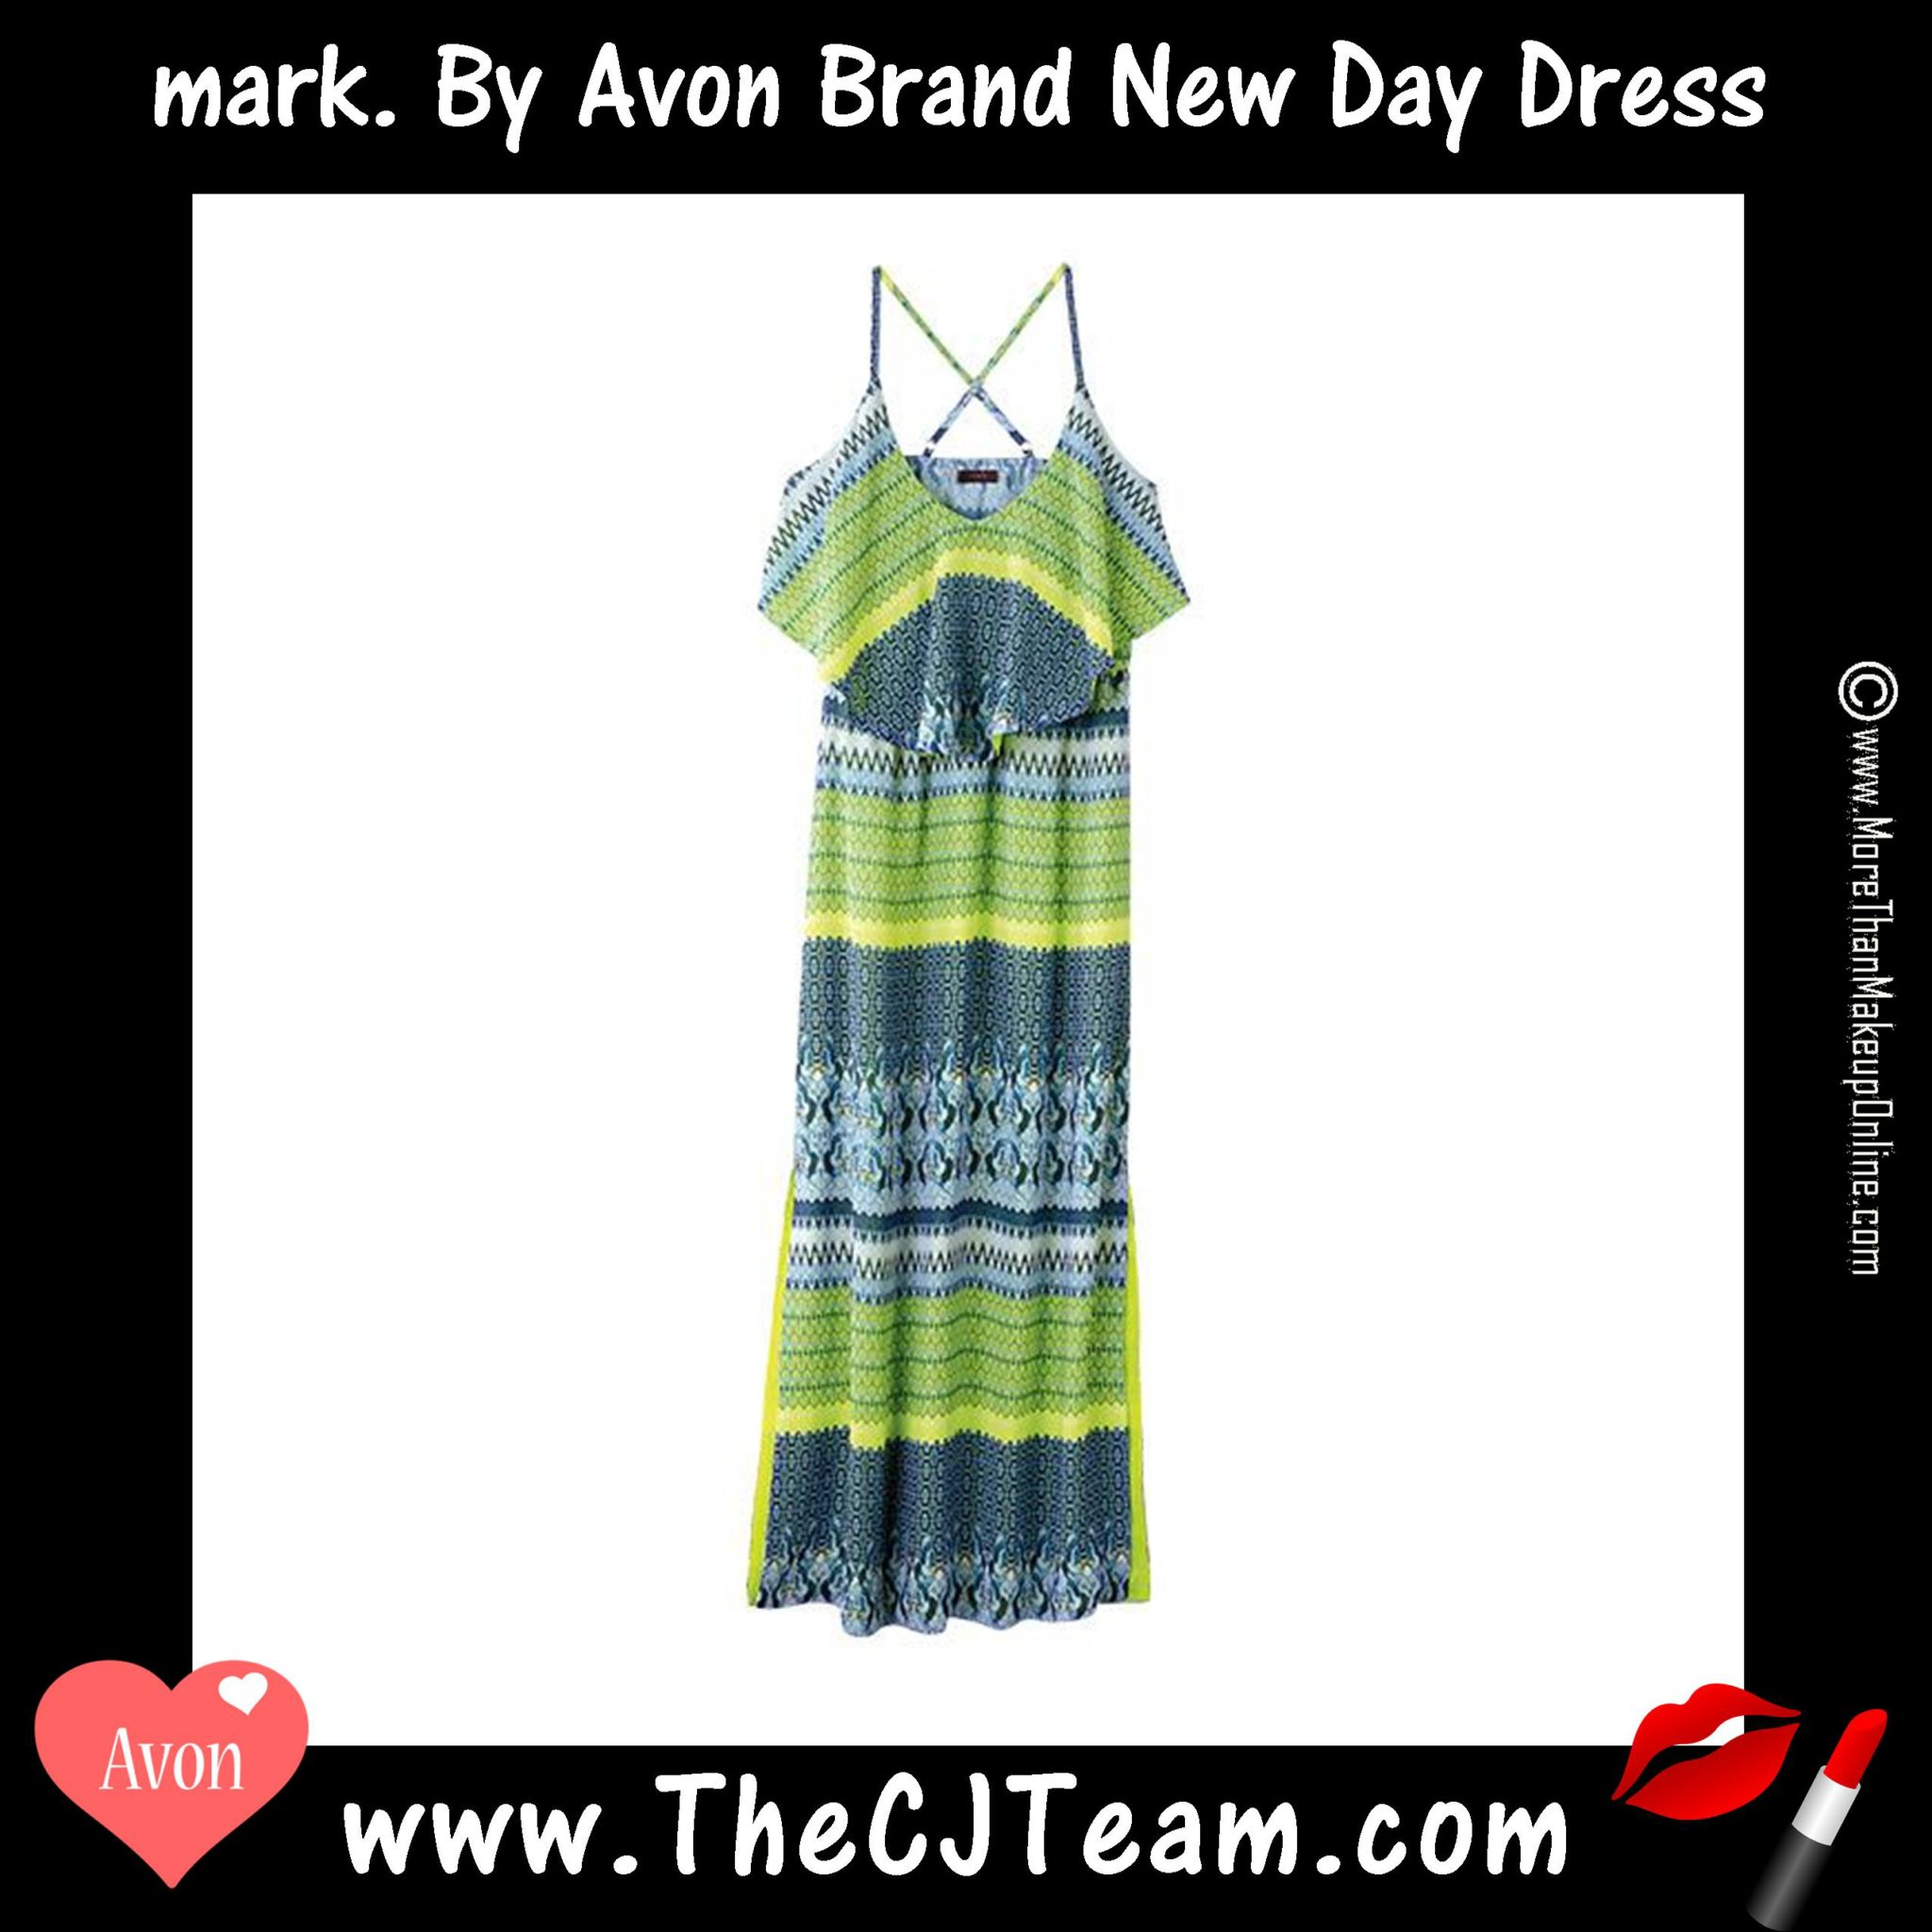 mark. By Avon Brand New Day Dress - More Than Makeup Online